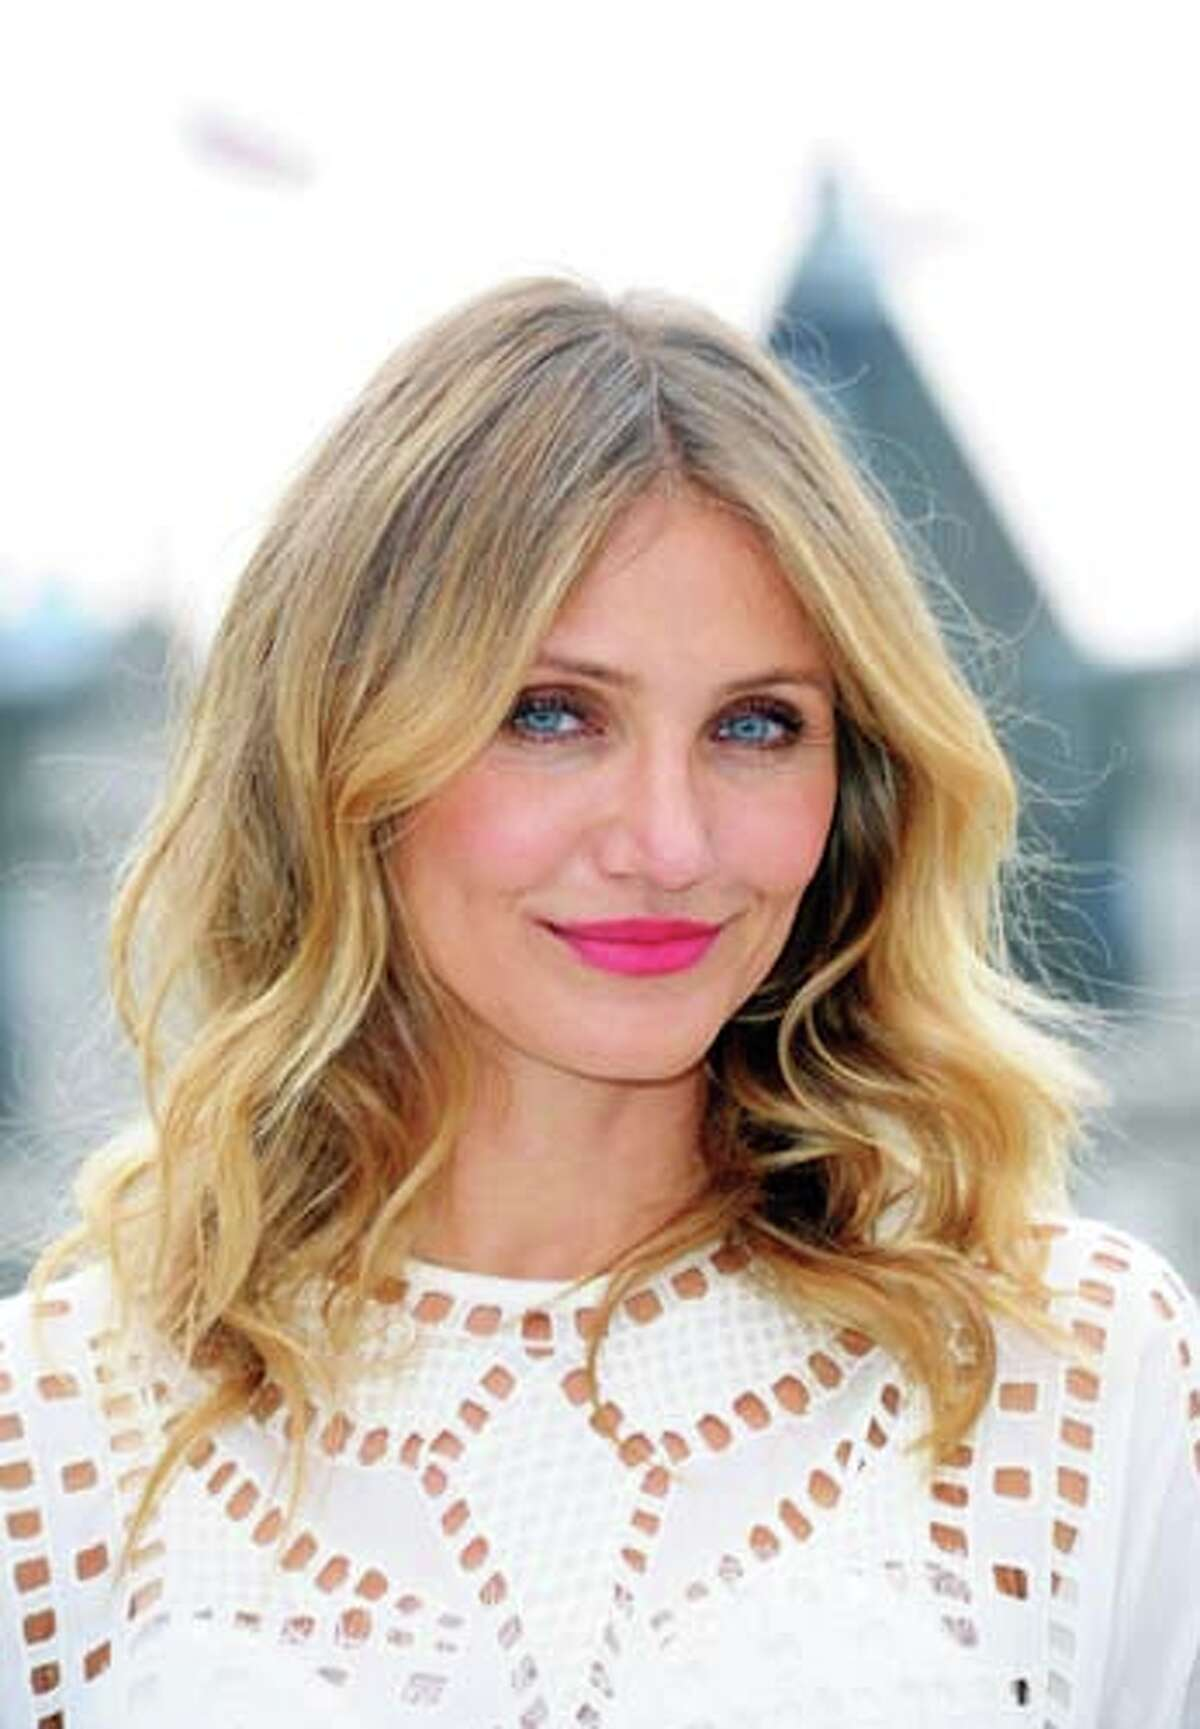 DOORKNOBS: In an interview withTime Magazine,Cameron Diaz admitted she's extremely germophobic and avoids touching doorknobs by pushing doors open with her elbows.